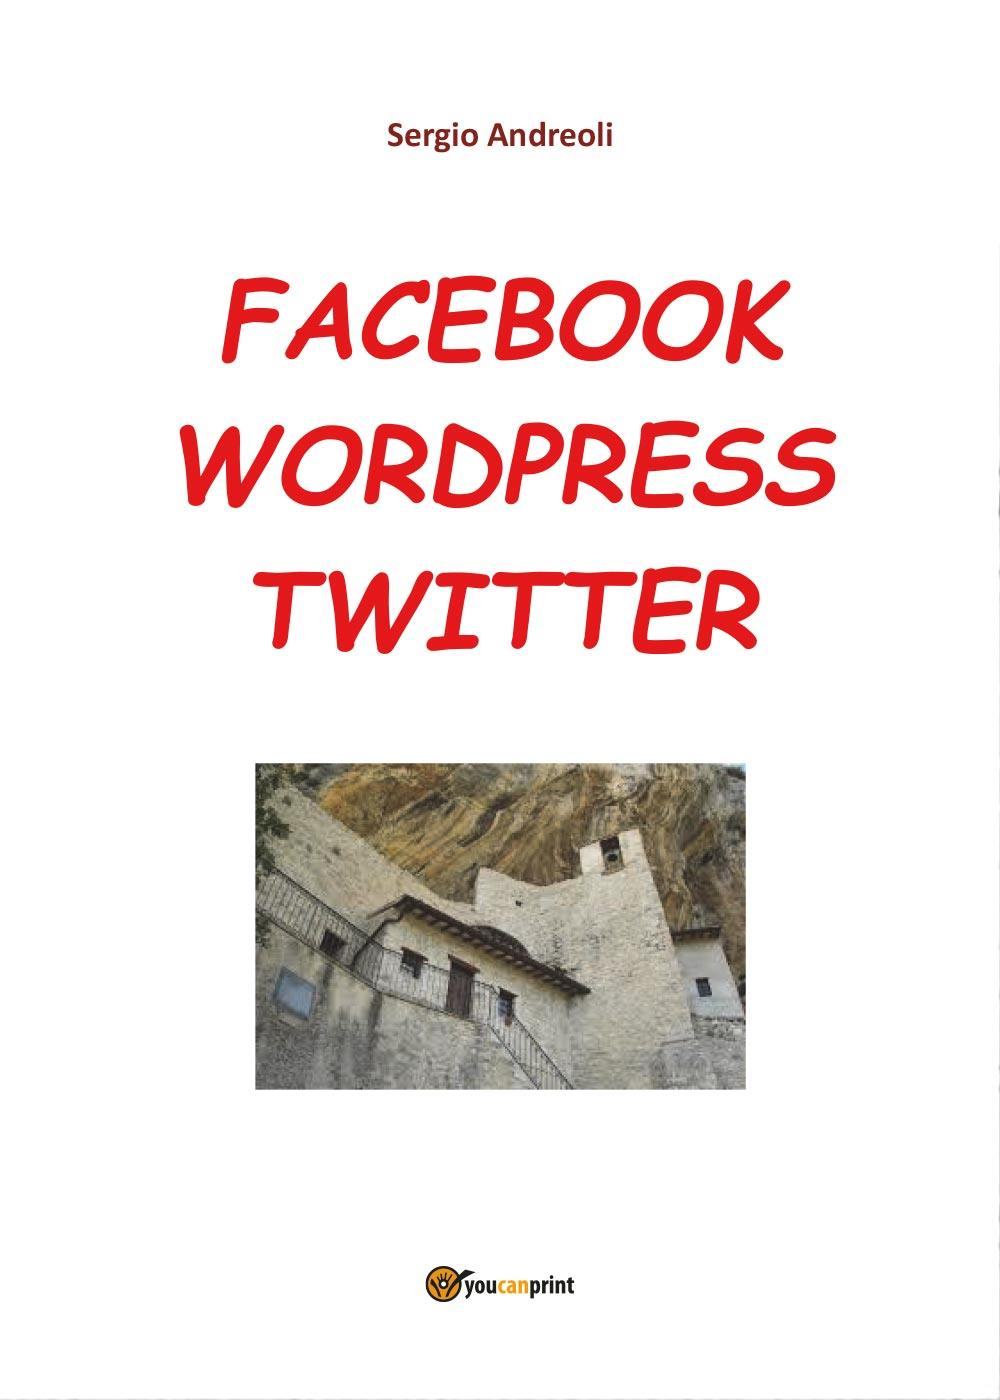 Facebook, Wordpress, Twitter per comunicare